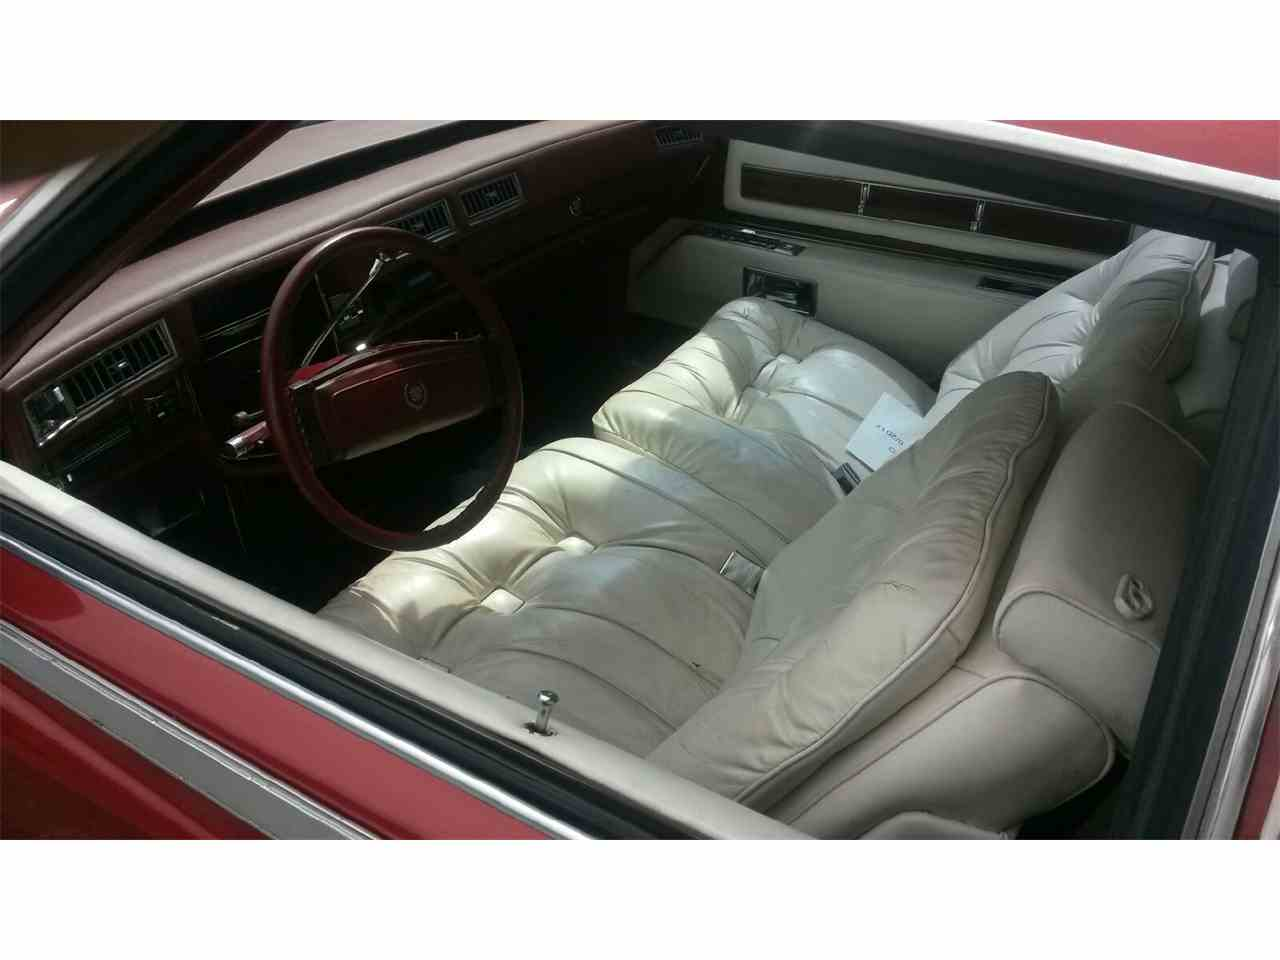 Large Picture of 1978 Eldorado Biarritz - $13,500.00 Offered by a Private Seller - KQ5W